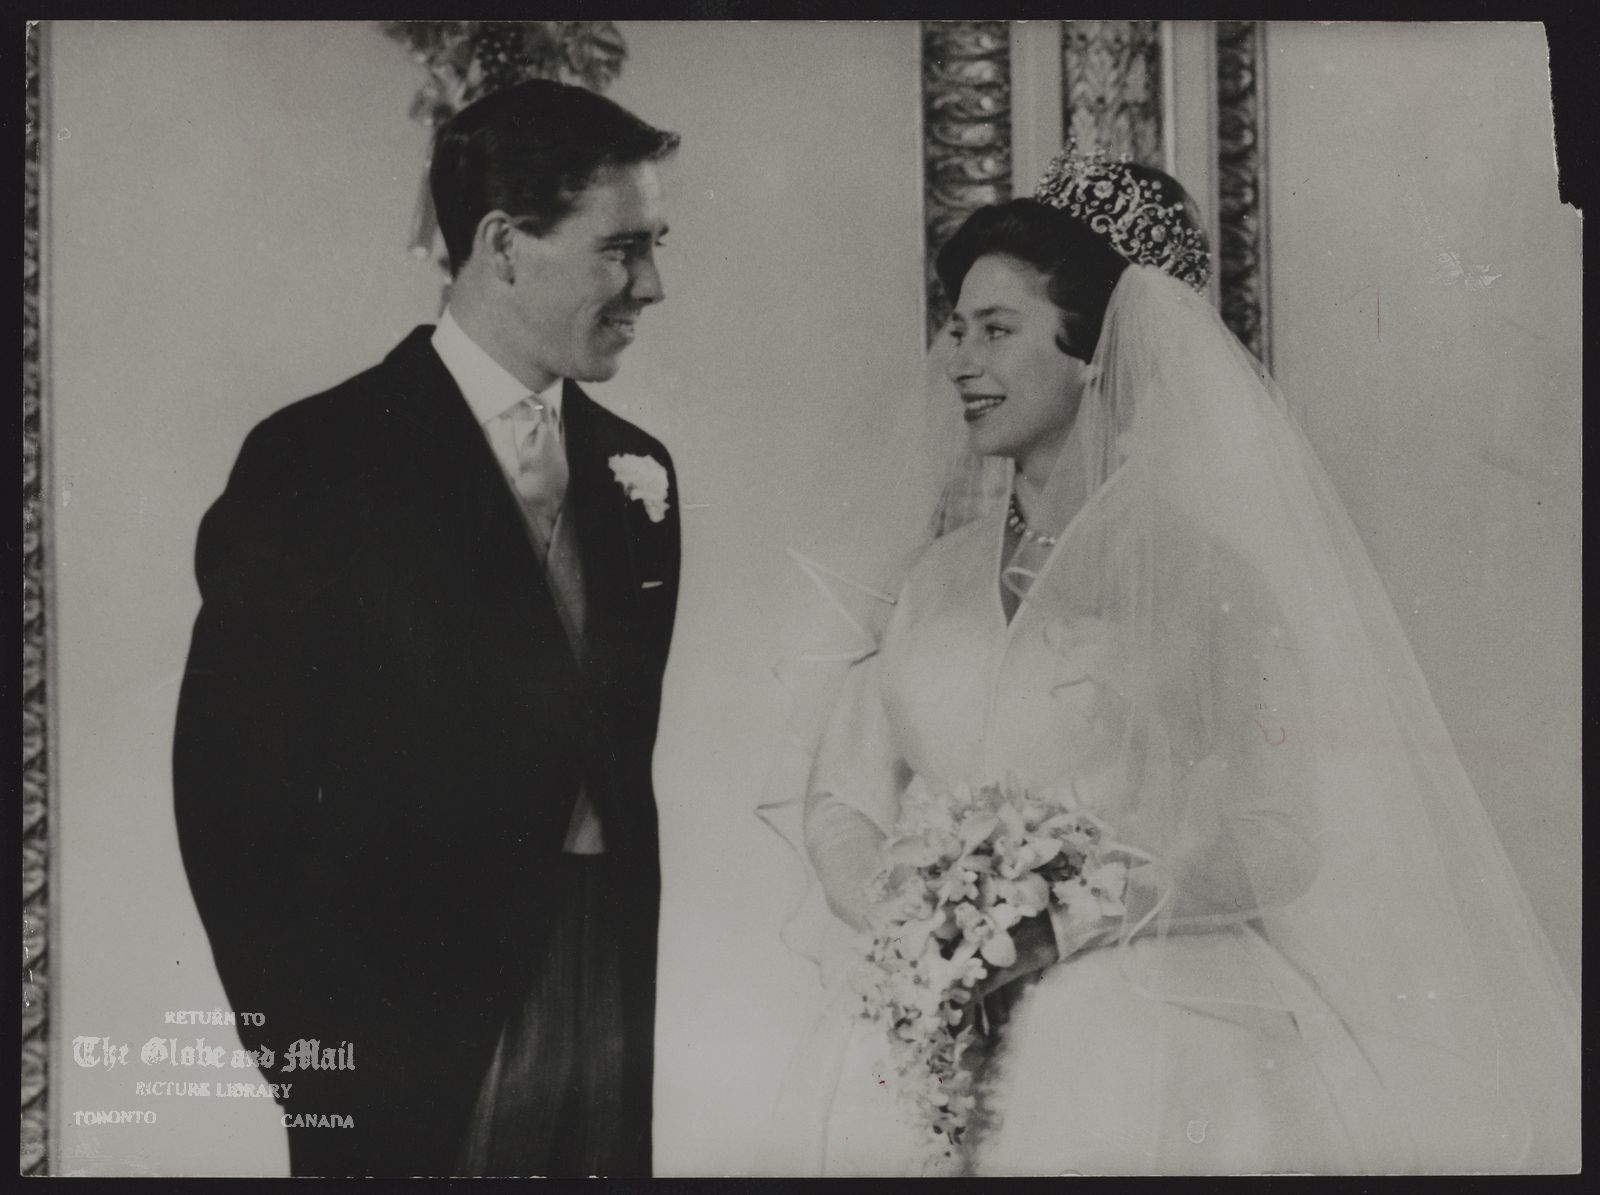 ROYAL FAMILY Gt. Britain Princess Margaret (Wedding) THE BRIDE AND GROOM -- THIS FORMAL PORTRAIT OF PRINCESS MARGARET AND HER BRIDEGROOM, MR. ANTONY ARMSTRONG JONES, WAS MADE IN BUCKINGHAM PALACE, LONDON, TODAY MAY 6, AFTER THEY HAD DRIVEN THERE FROM THEIR WEDDING IN WESTMINSTER ABBEY. LATER THEY LEFT FOR AN ATLANTIC HONEYMOON ON BOARD THE ROYAL YACHT